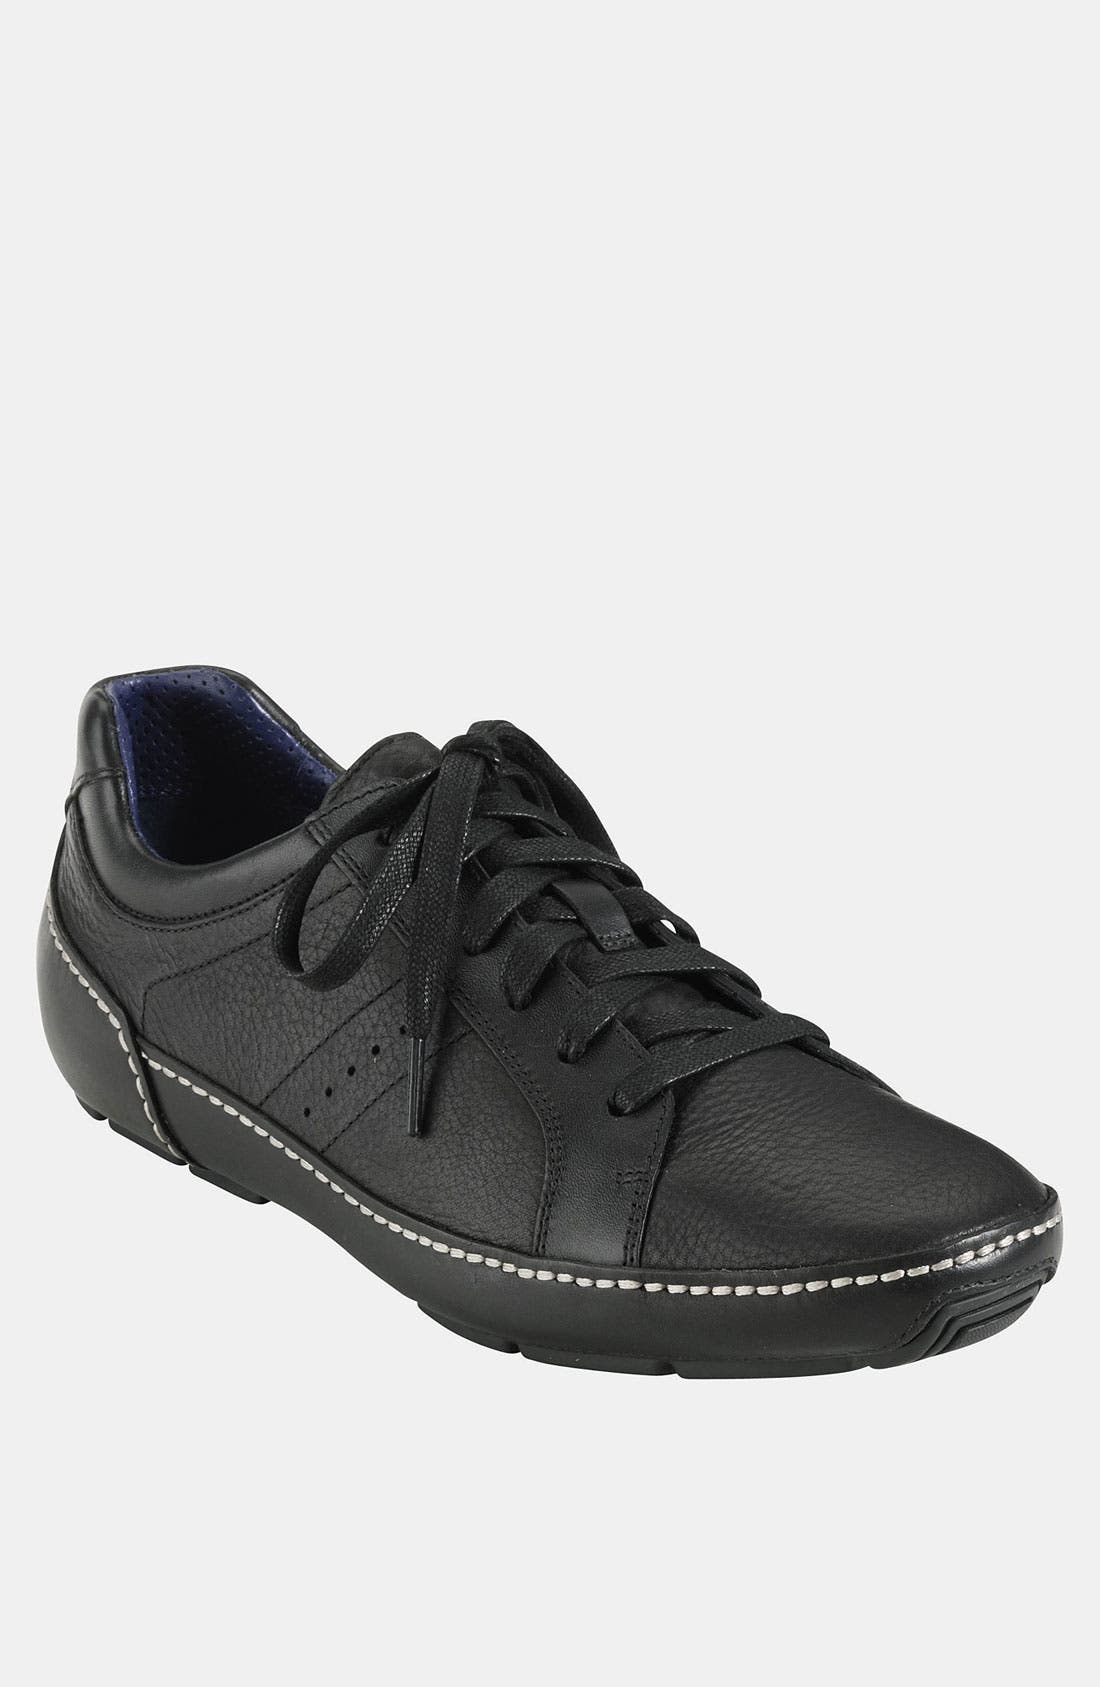 Alternate Image 1 Selected - Cole Haan 'Air Mitchell' Sneaker